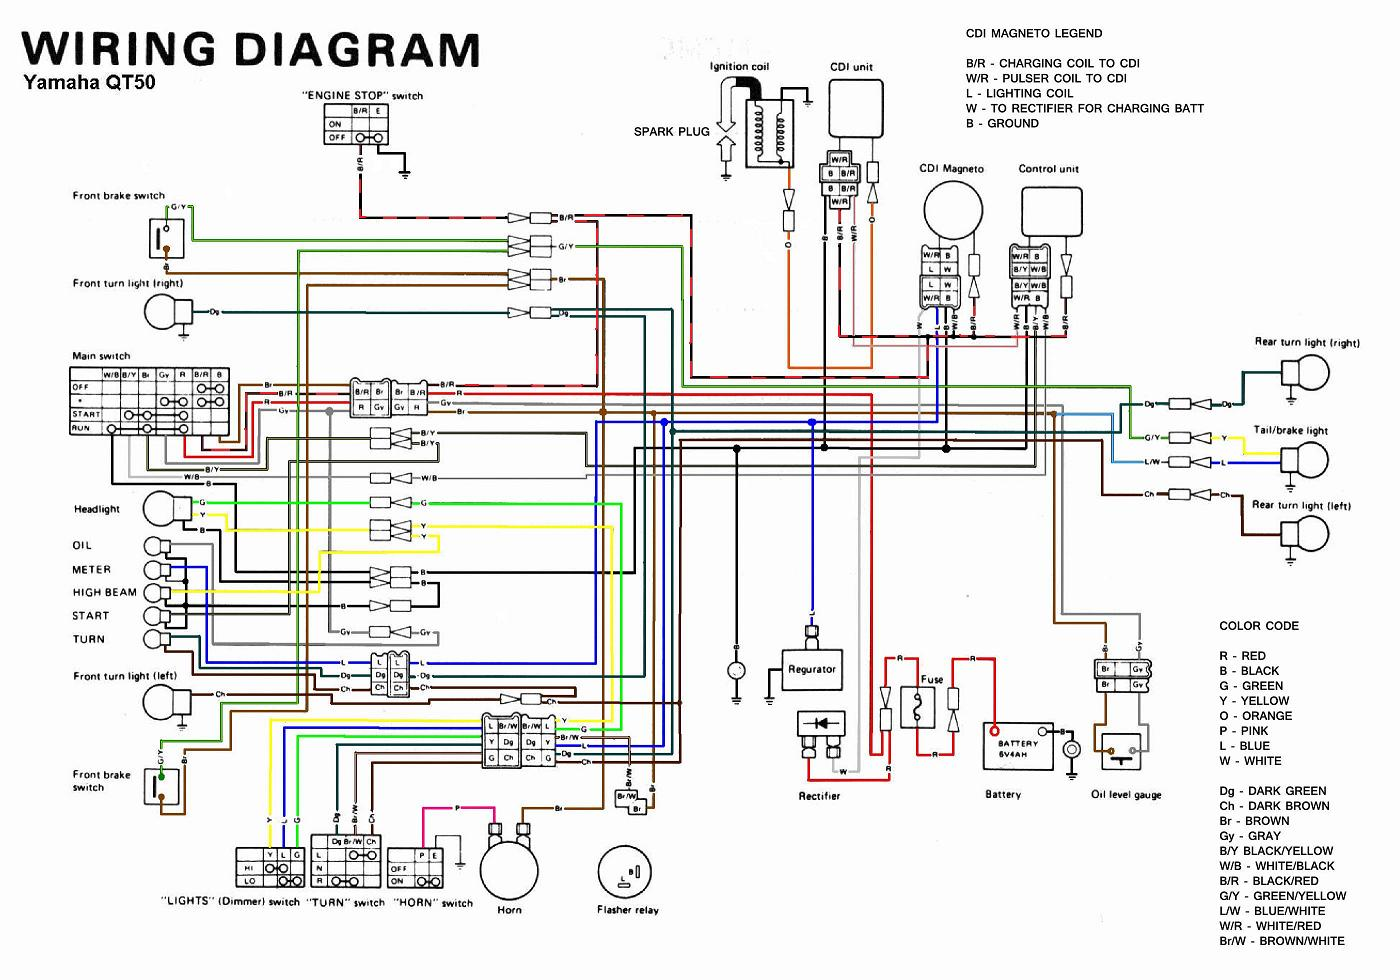 Yamaha QT50 Wiring Diagram yamaha qt50 wiring diagram yamaha qt50 luvin and other nopeds wiring diagram for dummies at n-0.co